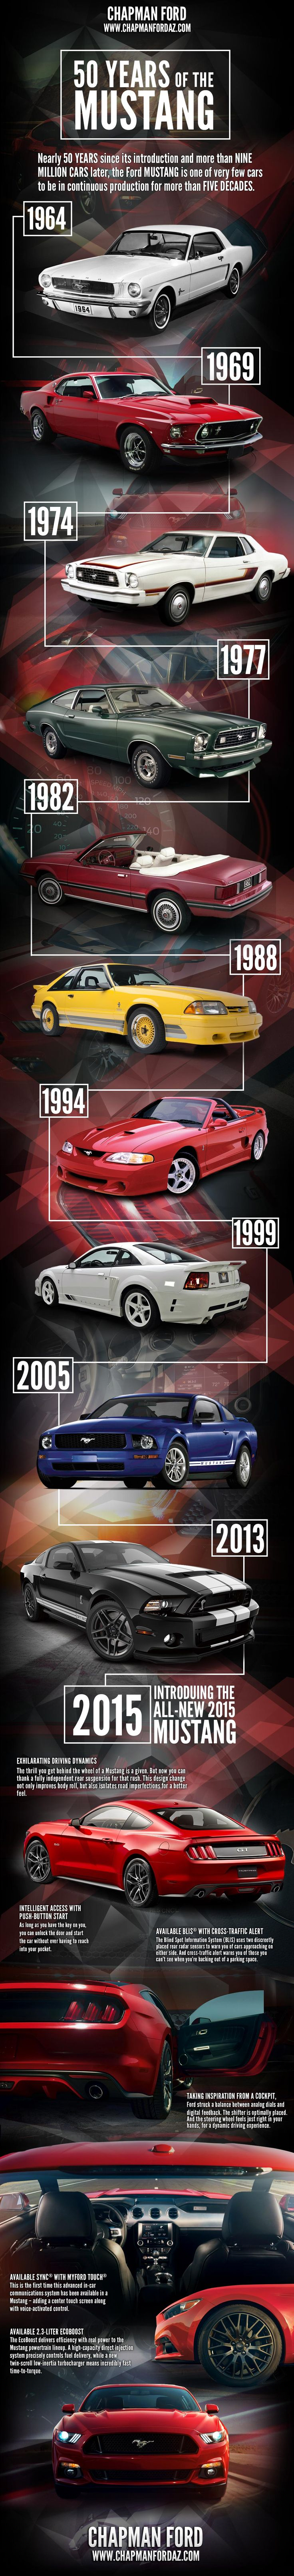 50 Years of the Ford Mustang   #infographic #Mustang #Cars